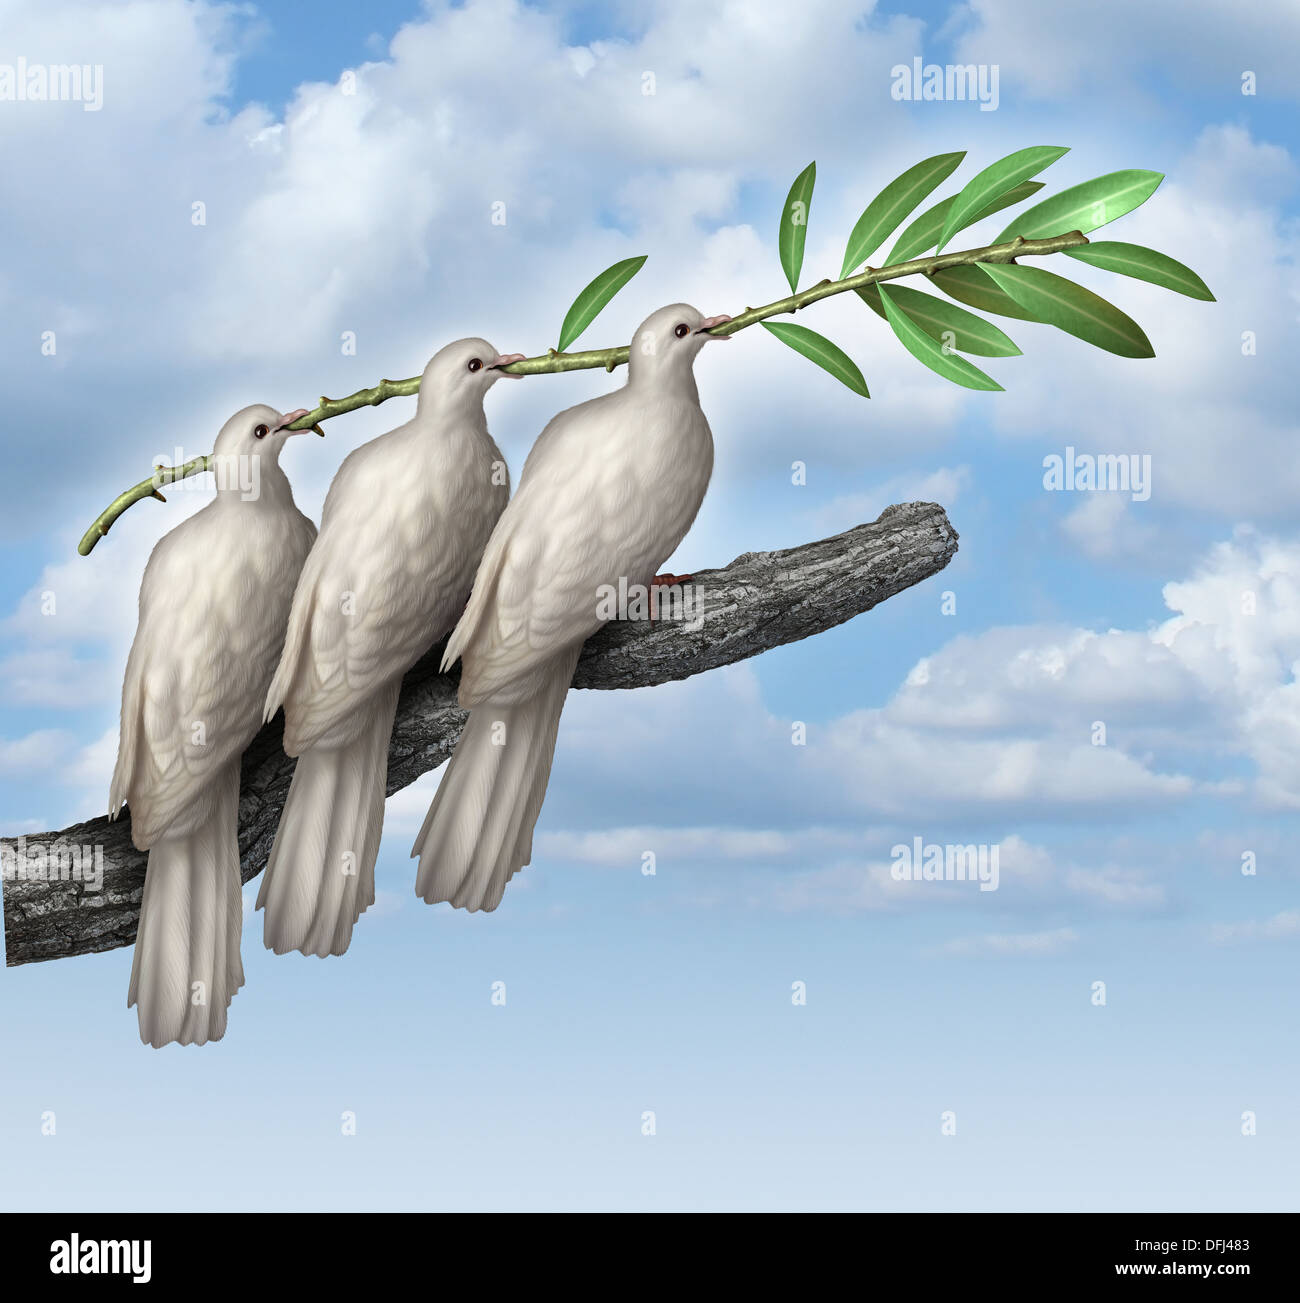 Group Diplomacy as a concept of negotiated peace with three white doves working together in partnership and friendship - Stock Image